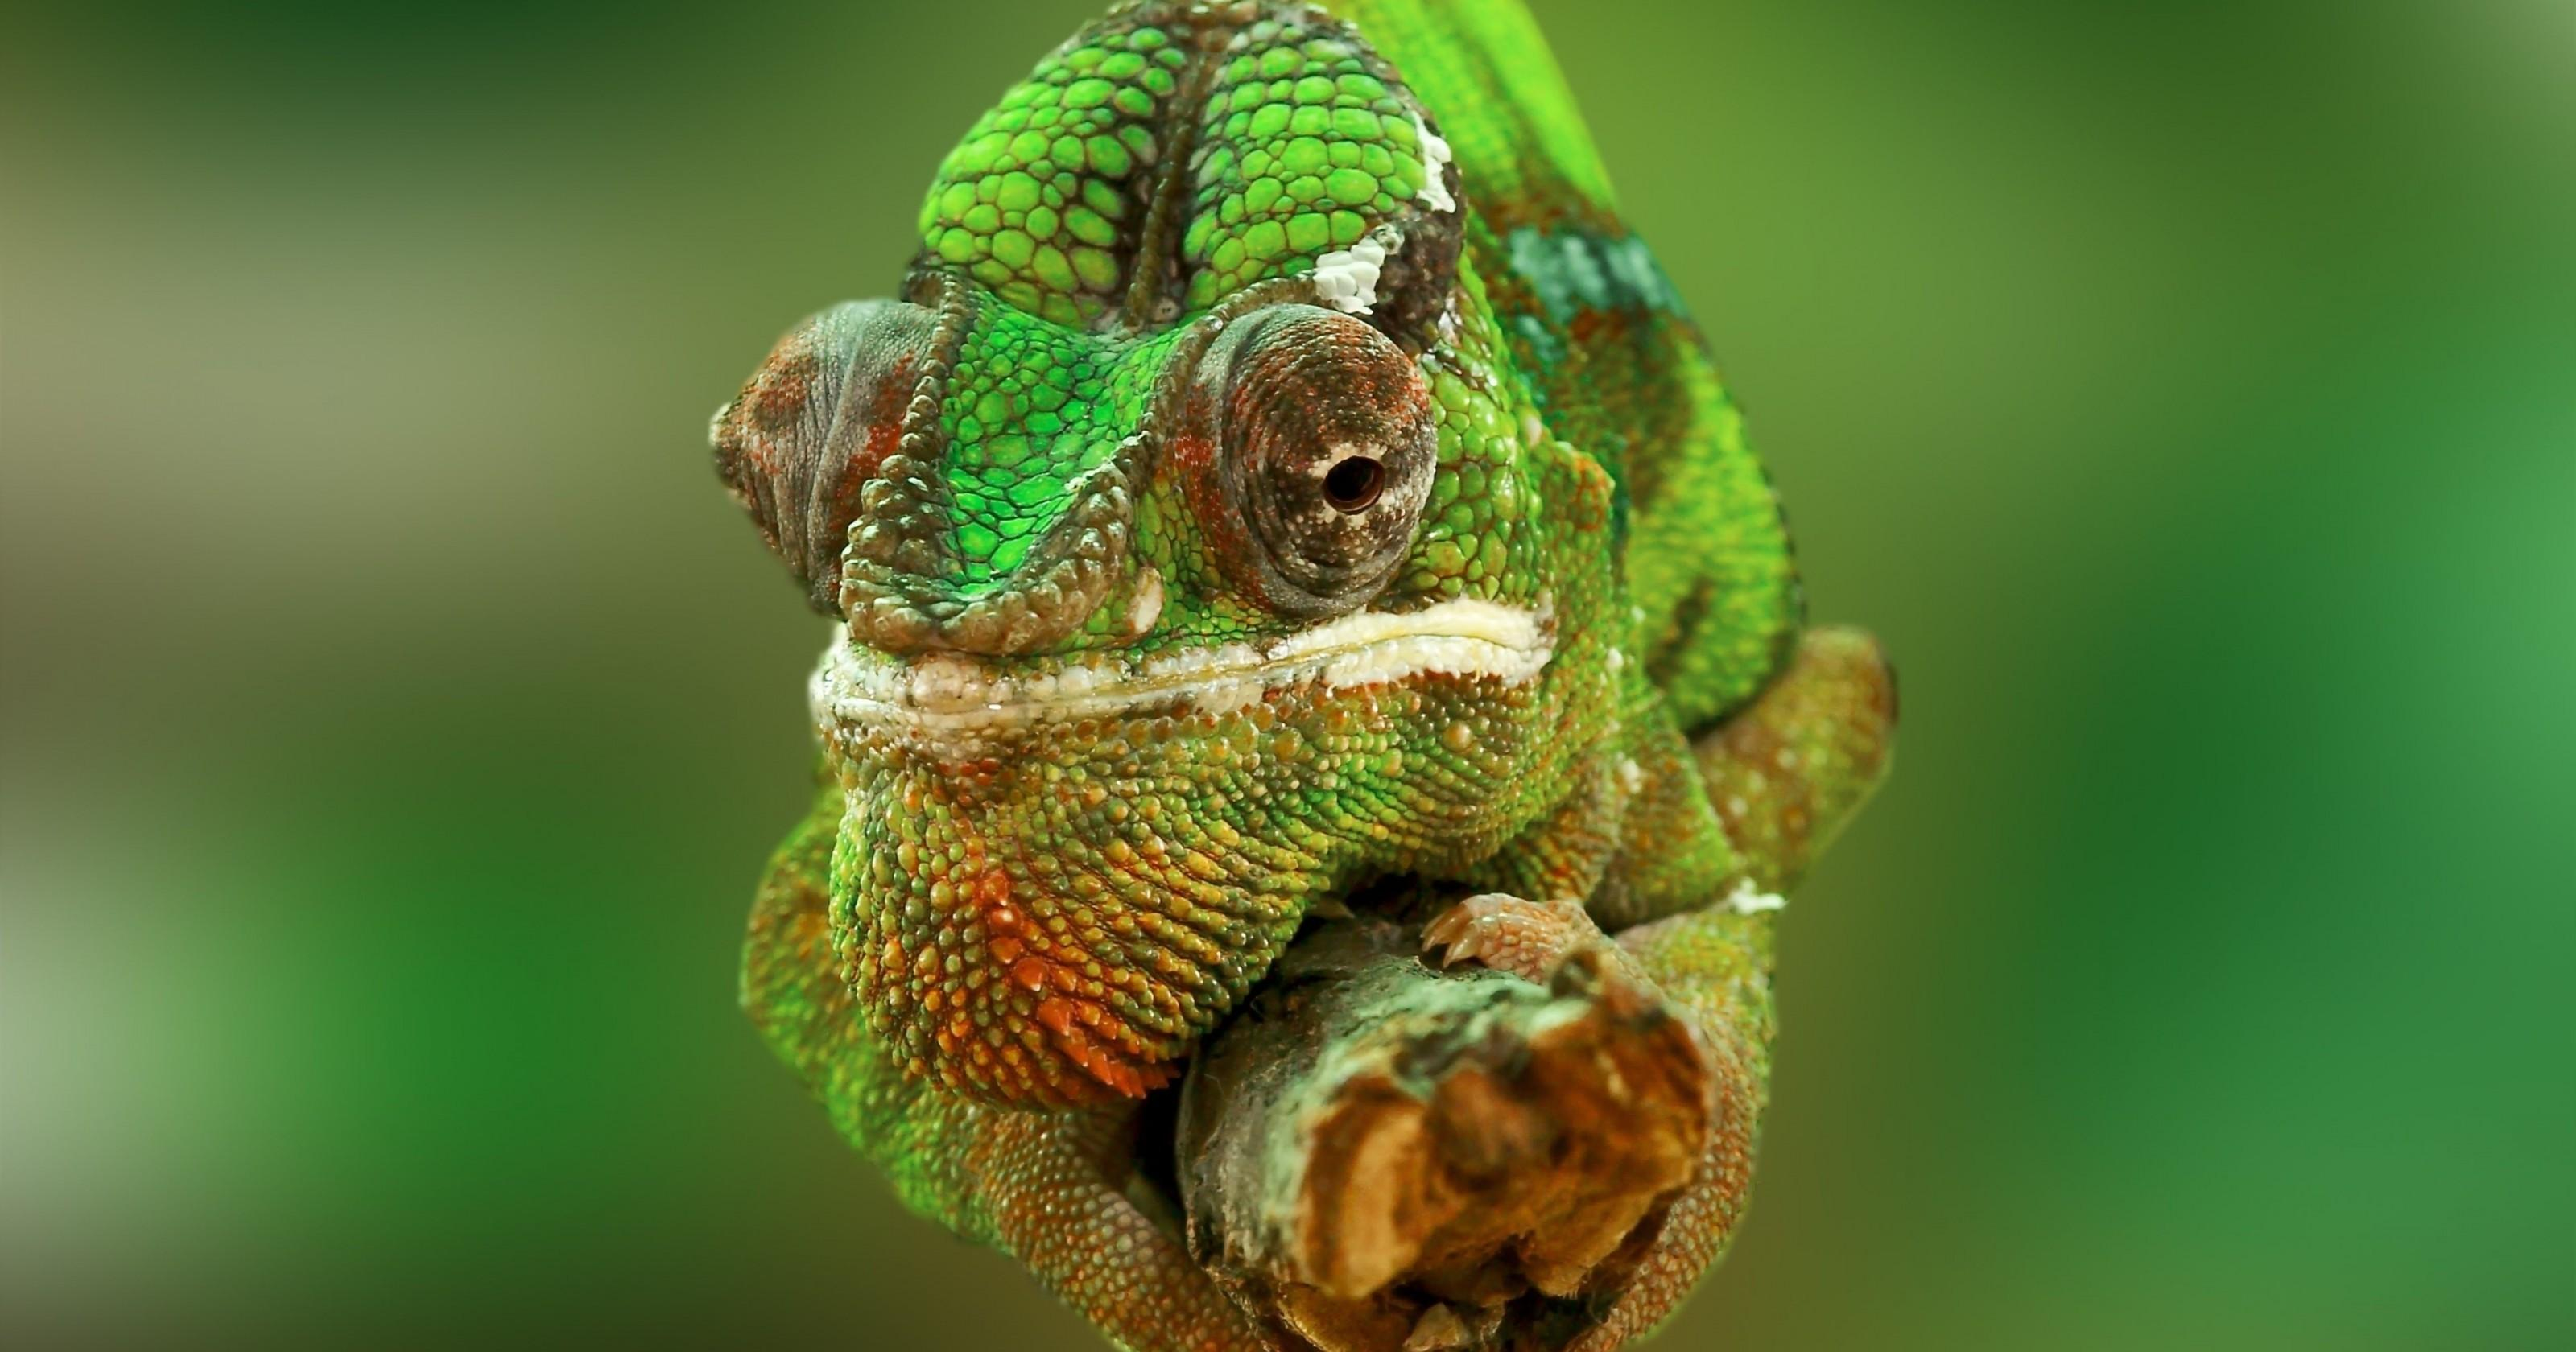 Download 3200x1680 Chameleon, Close